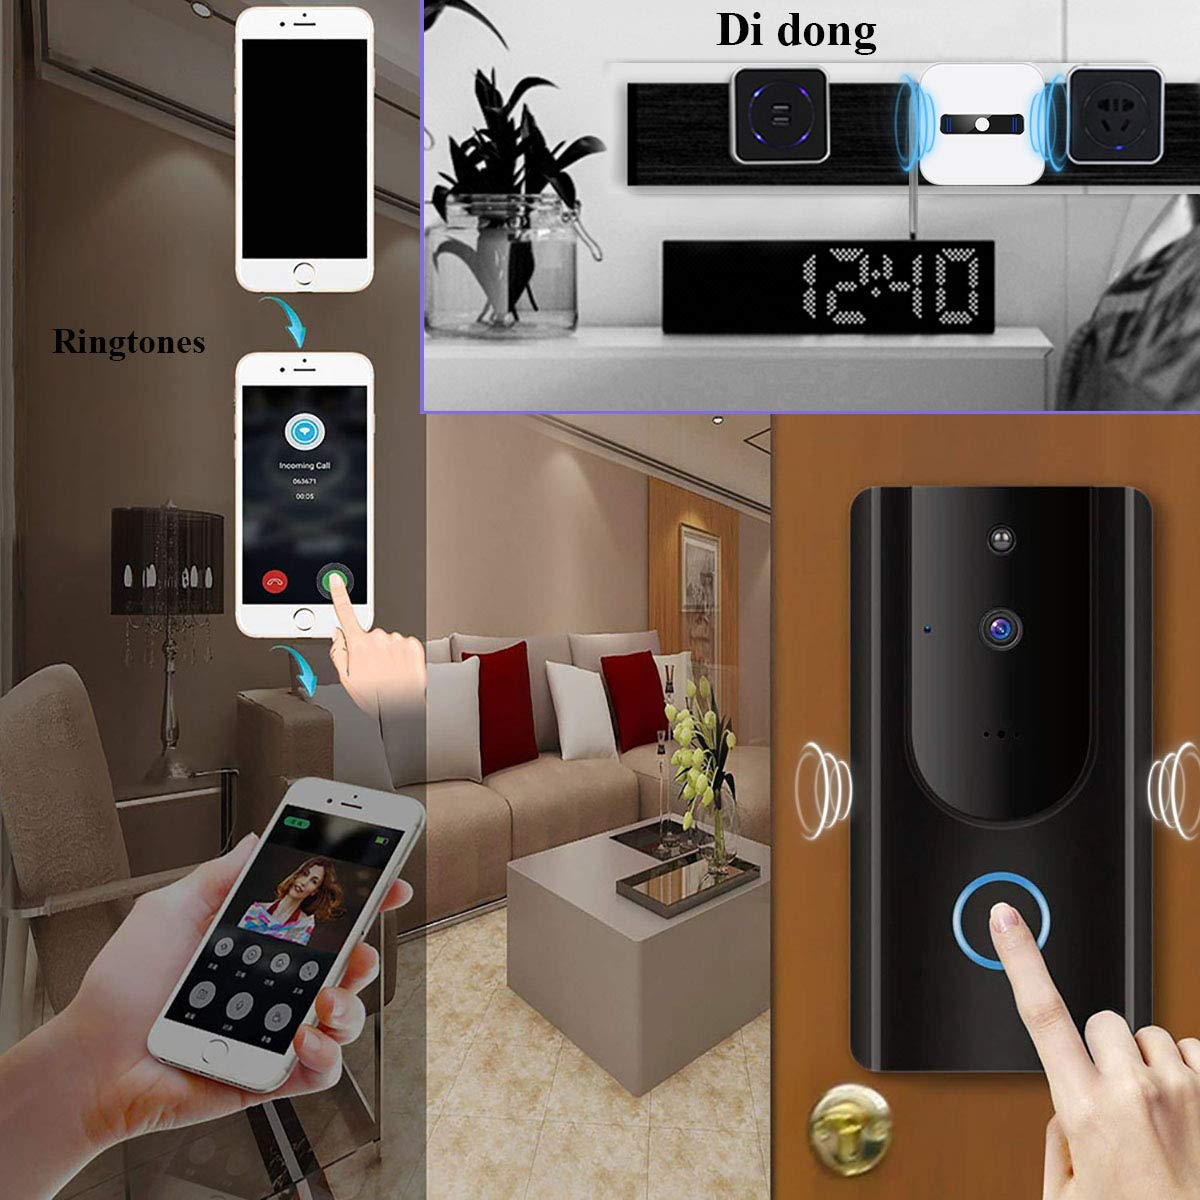 Video Doorbell,Visual Doorbell Camera 720P HD Wifi Security Camera with 16G TF Card, Chime and Battery,Real-Time Two-Way Talk, Night Vision,PIR Motion Detection,App Compatible for iPhone and Android by LeVcoecam (Image #2)